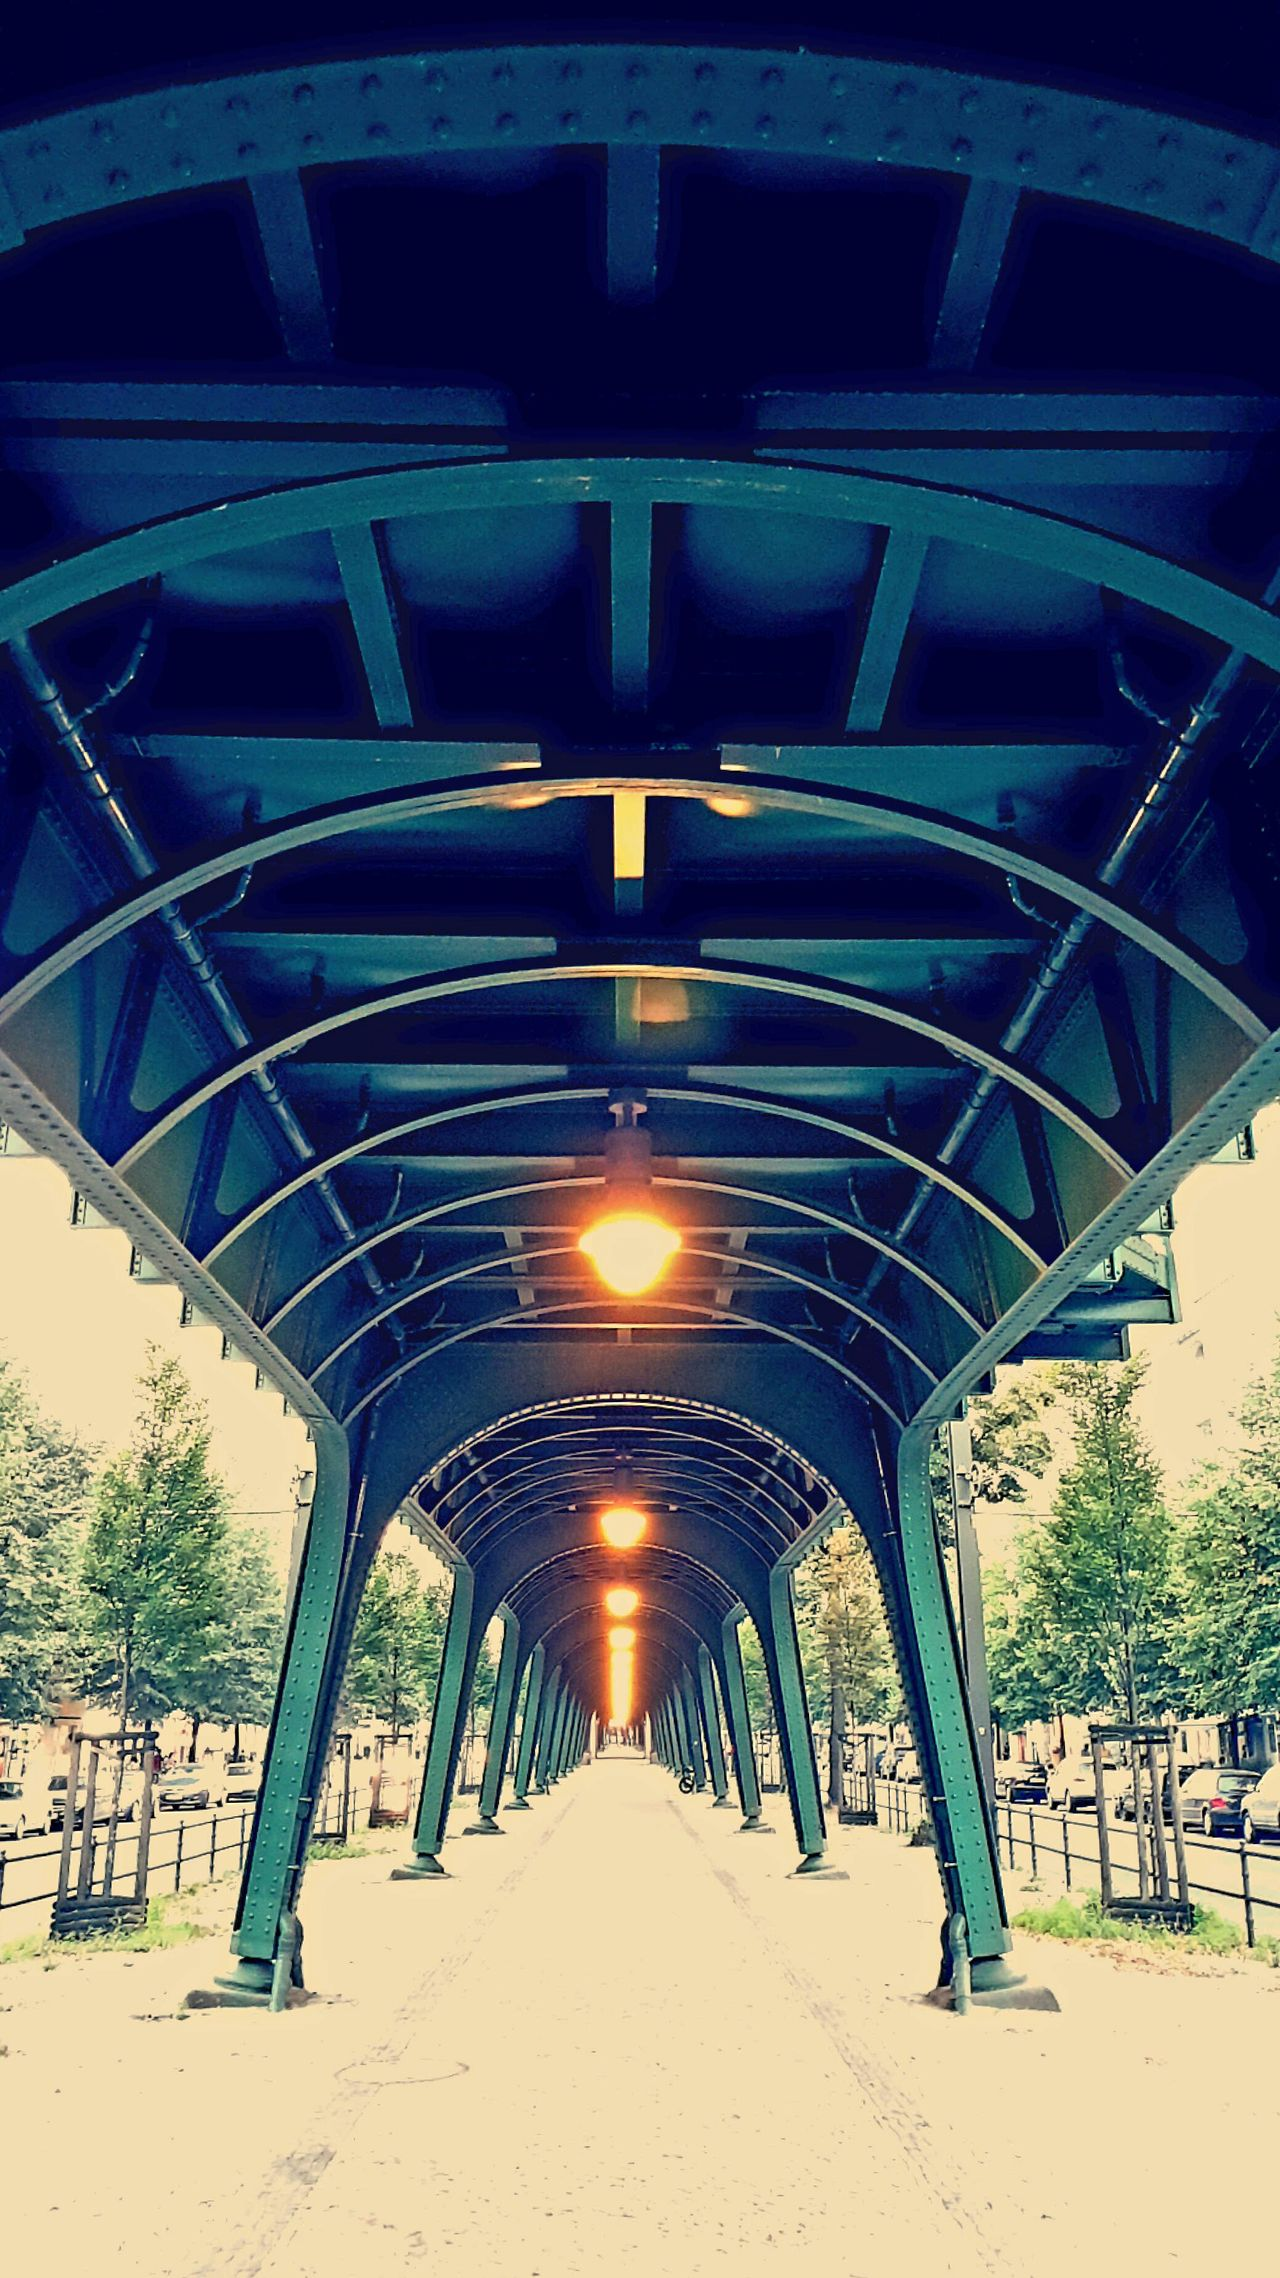 Berlin Architecture Tourism Prenzlauer Berg Architecture Built Structure Connection Low Angle View Metal Engineering Bridge - Man Made Structure Modern Travel Destinations Below Tourism Day The Way Forward Outdoors Bridge Architectural Column Supported Architectural Feature Footpath Famous Place